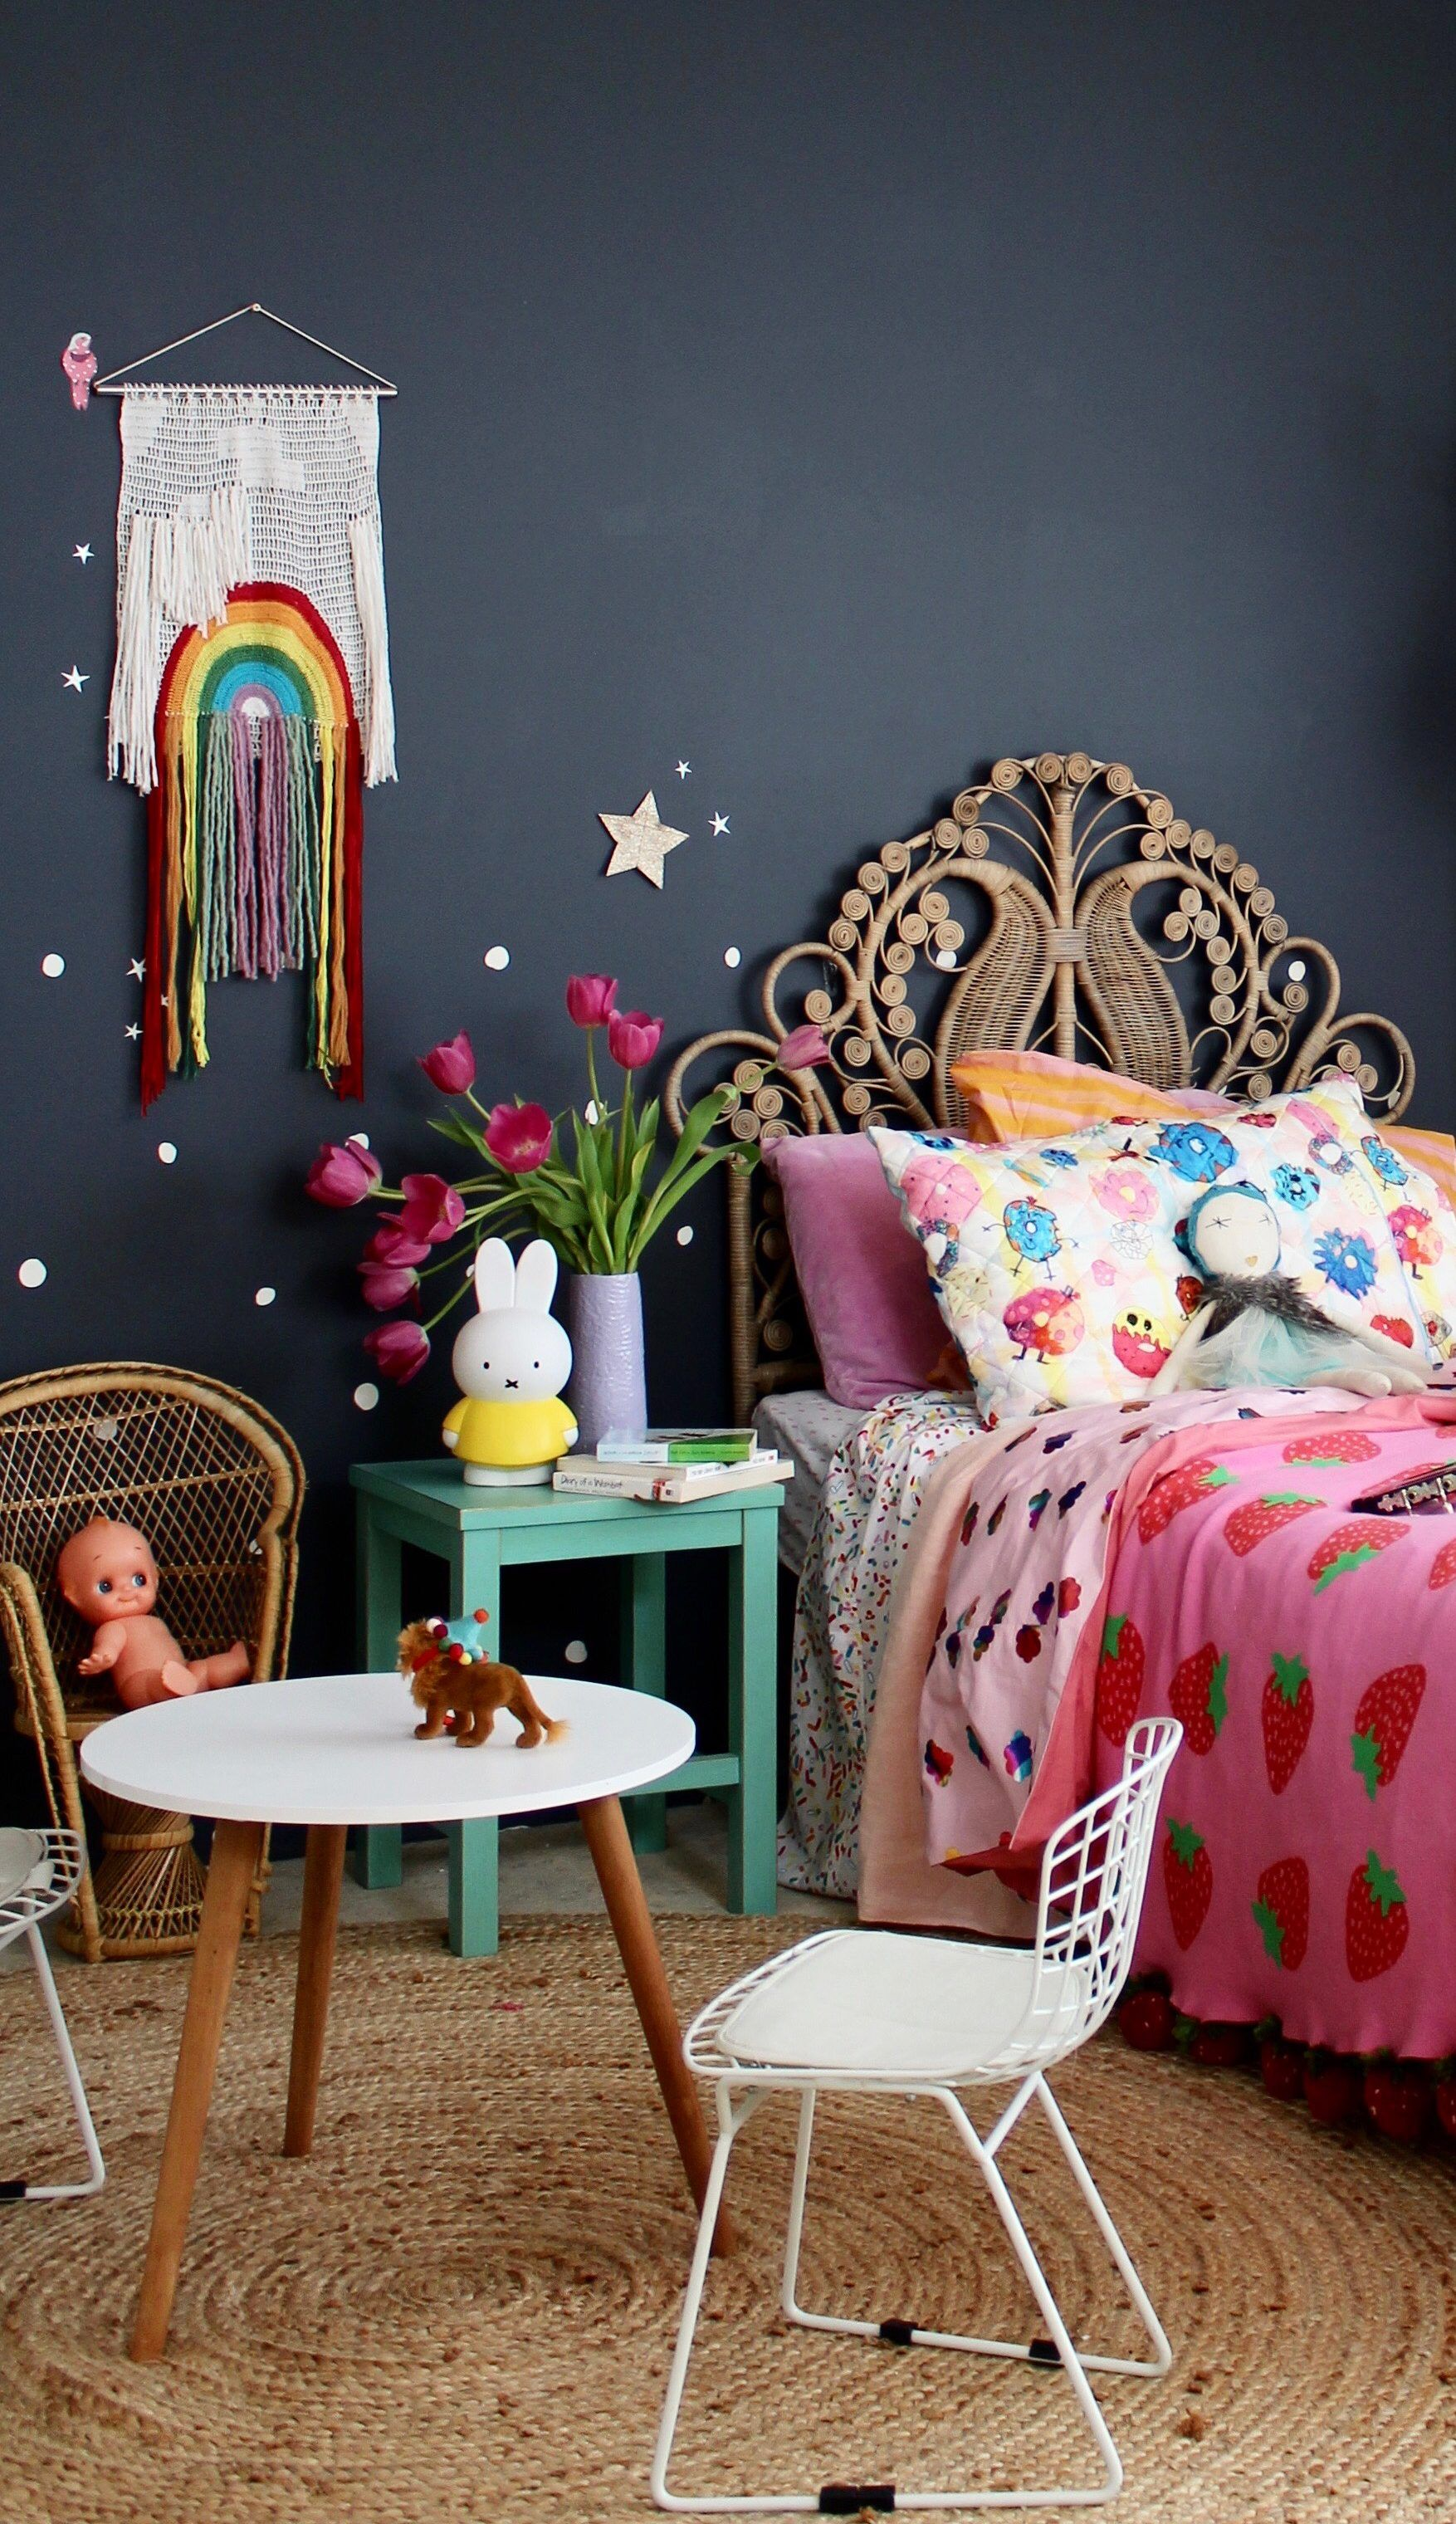 Trending Now Boho Vintage Bedroom for girls kids, Girl